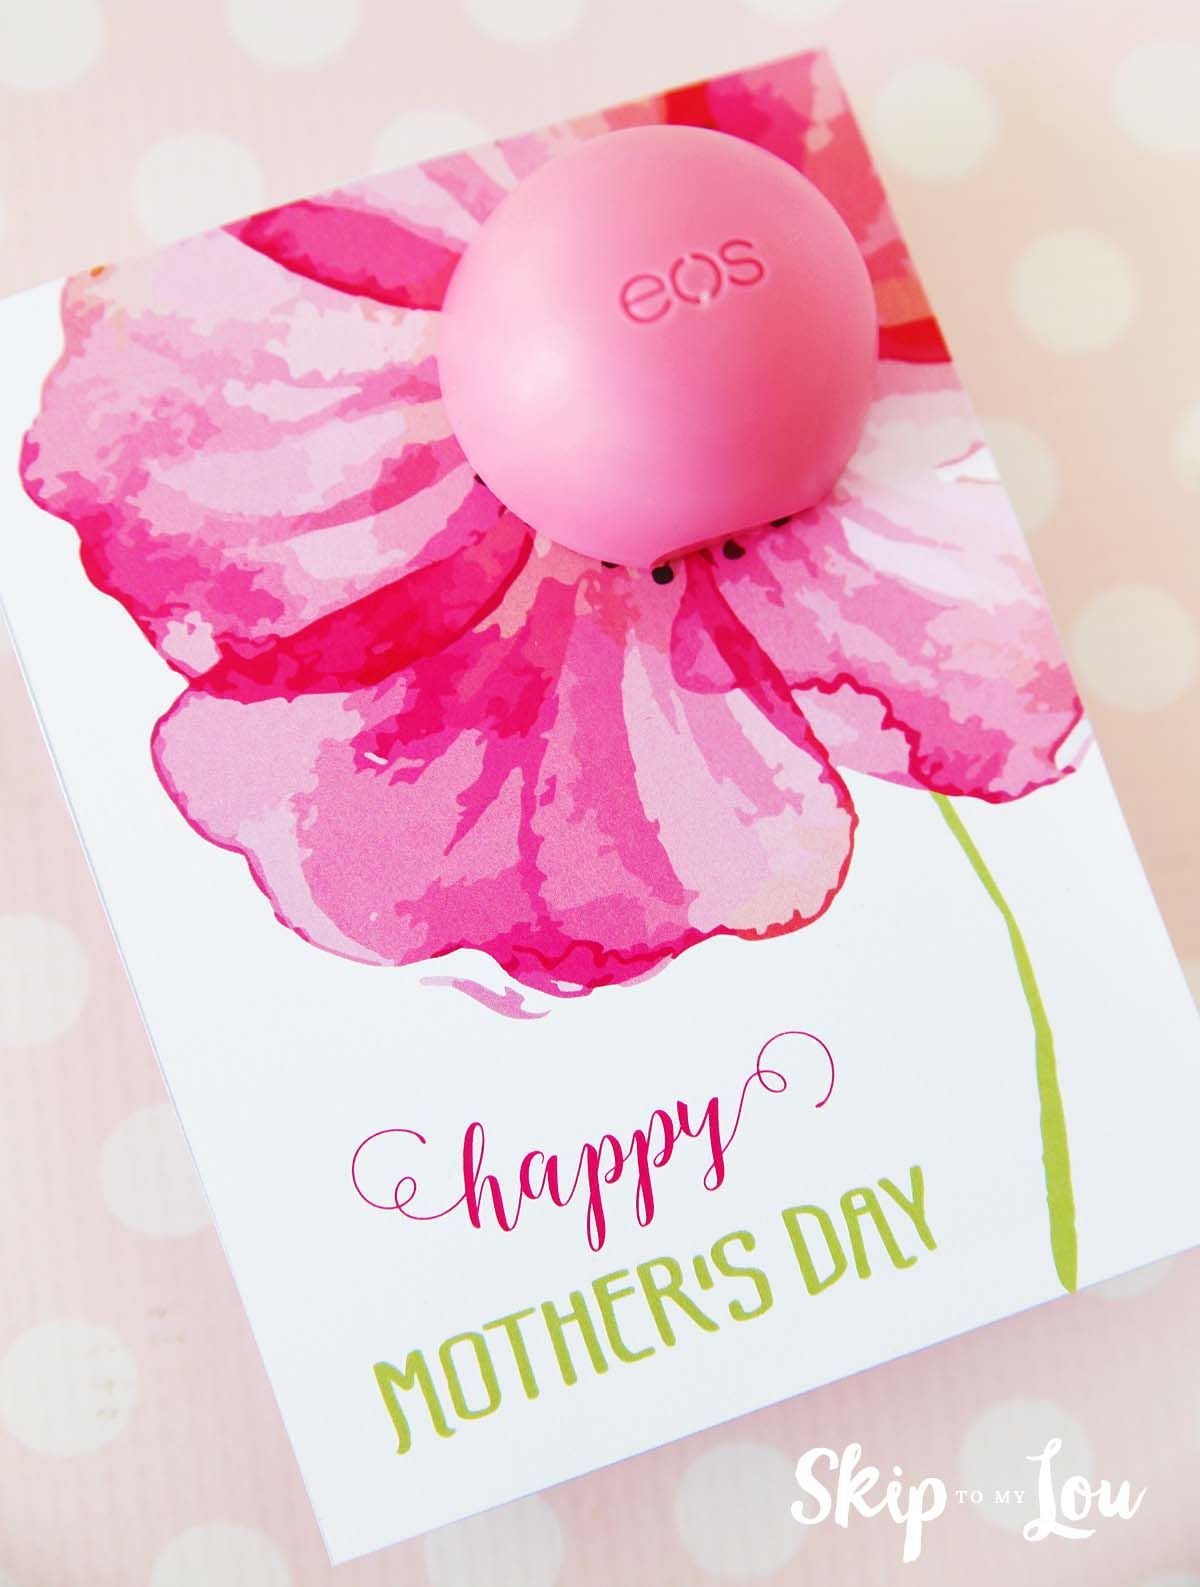 Eos lip balm printable mothers day cards handmade gift ideas